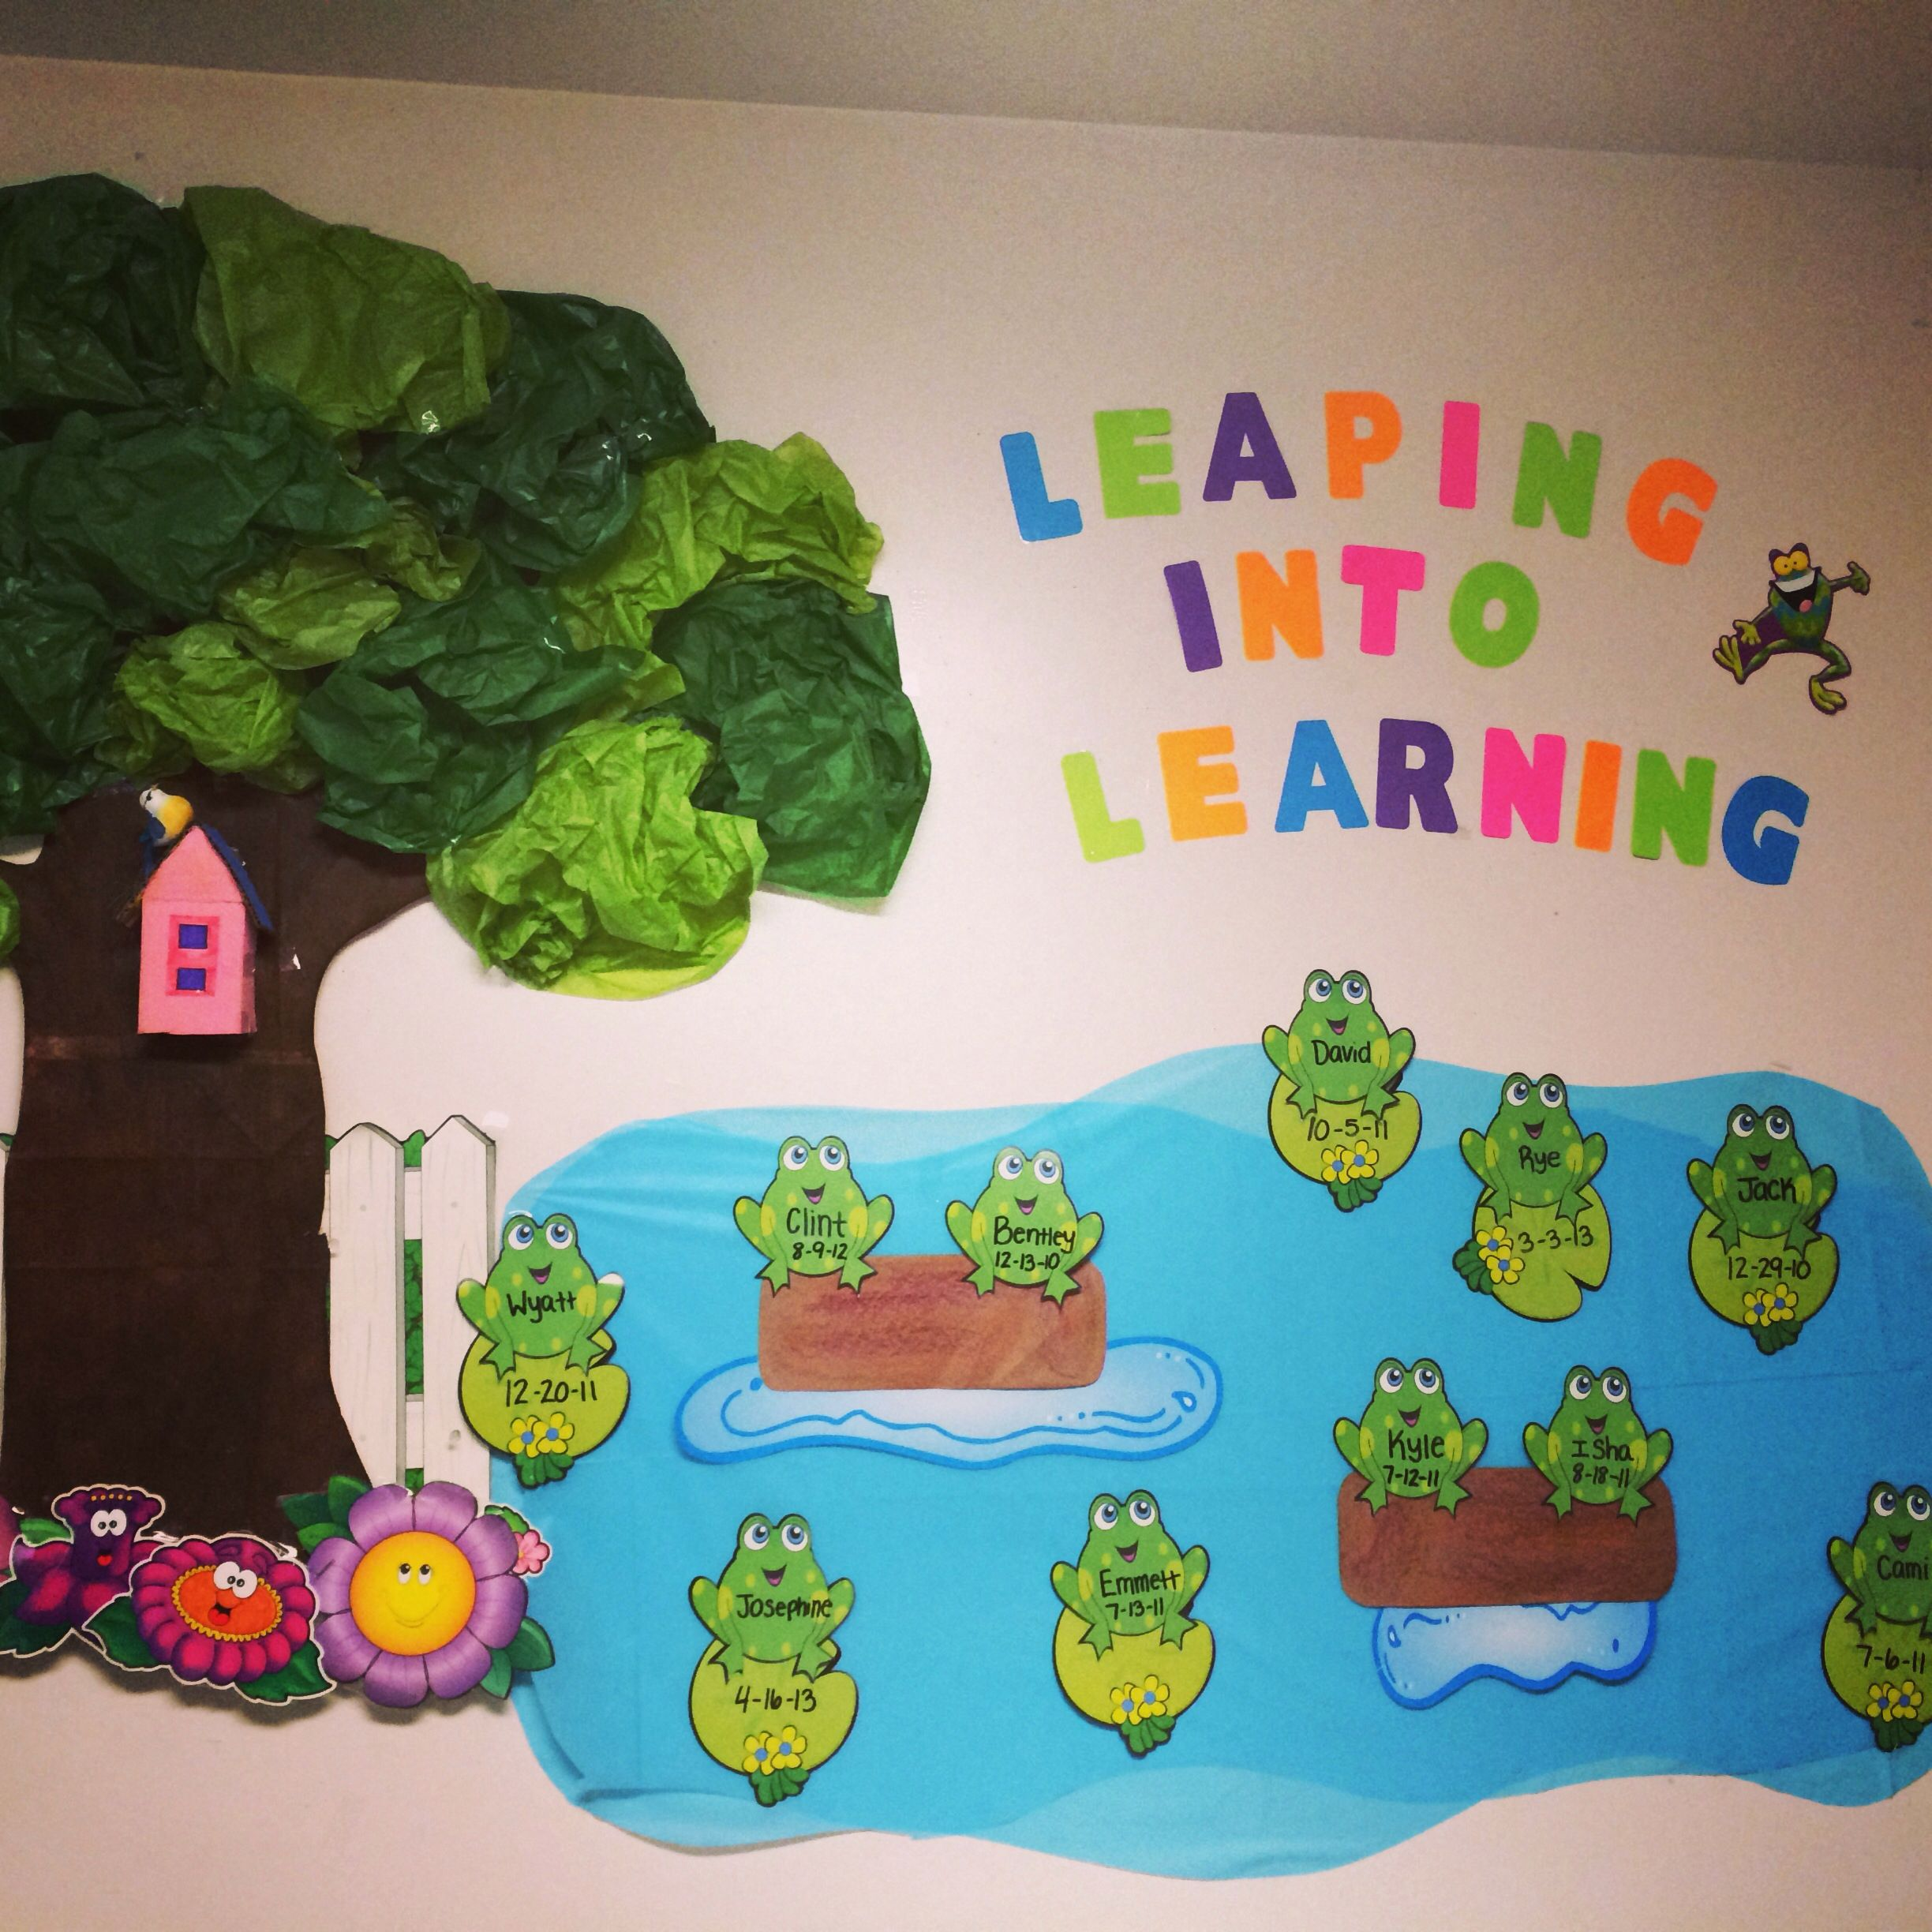 Leaping Into Learning Toddler Classroom Decorations